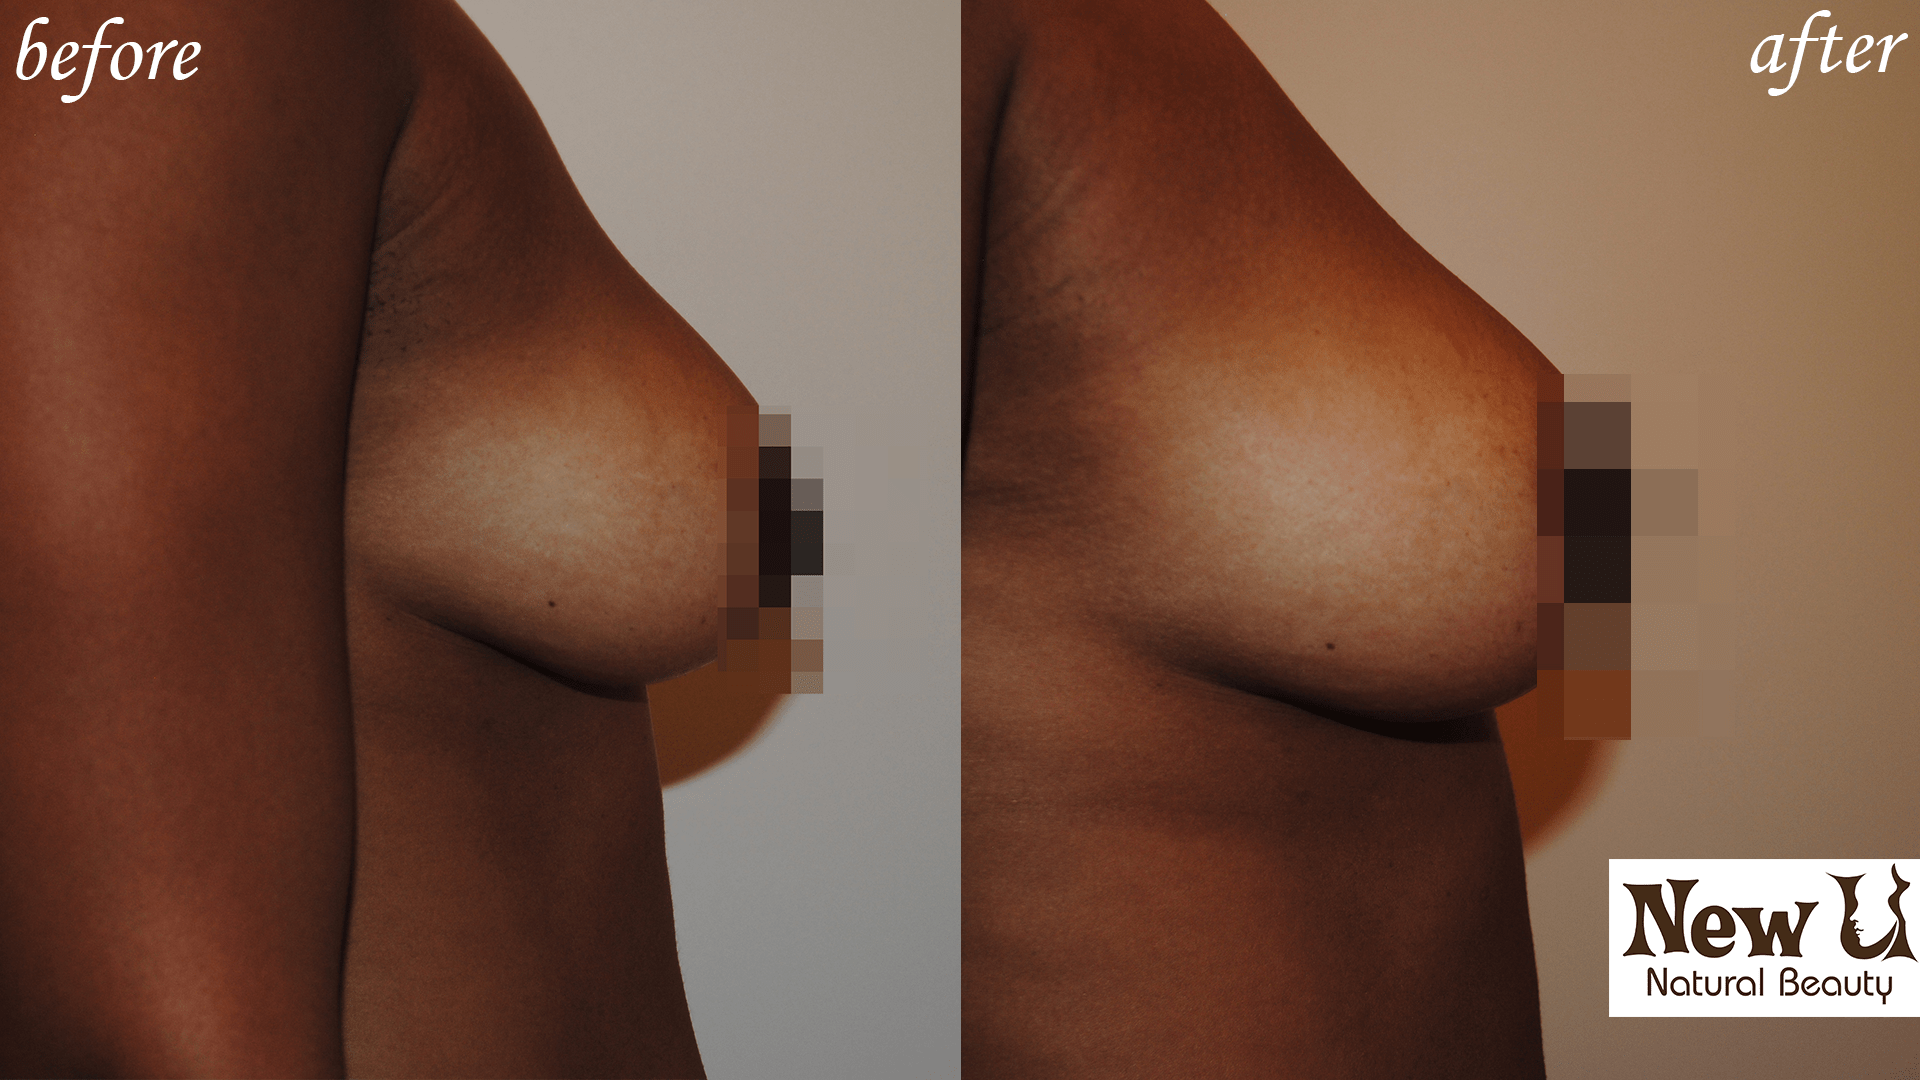 Breast Enhancement 3 Las Vegas Before and After